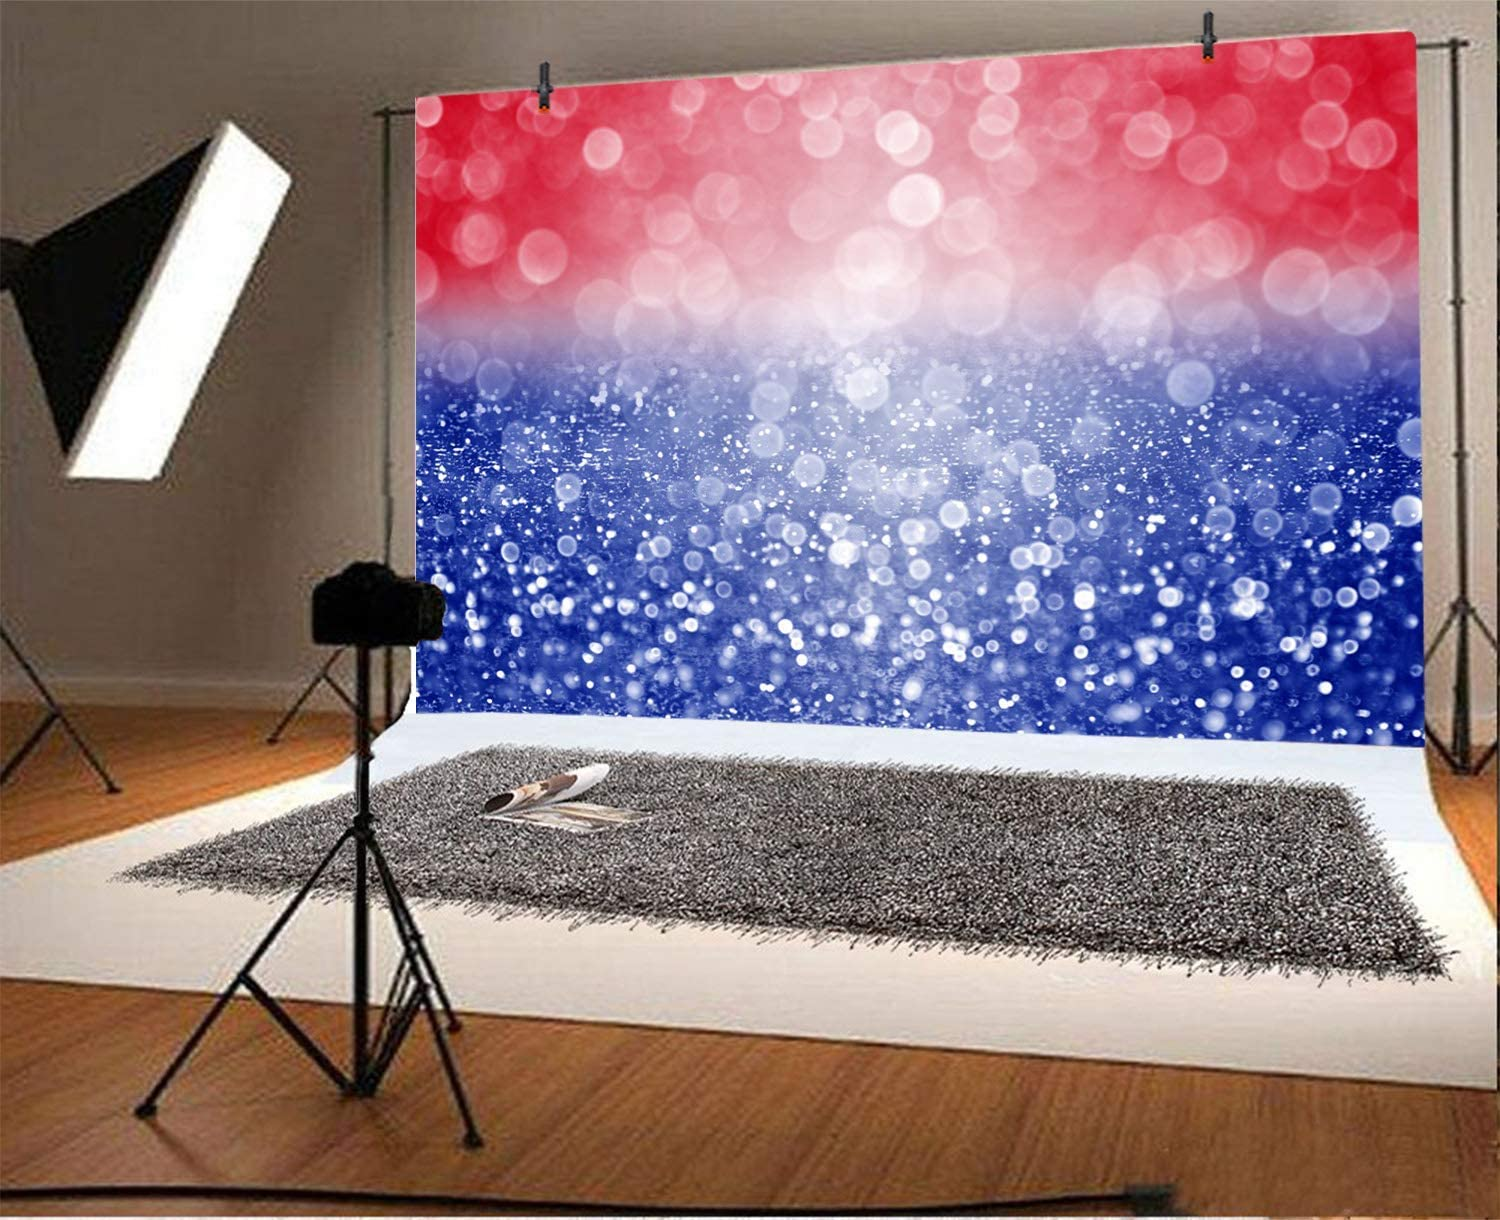 Abstract Glitter USA Flag Backdrop 10x7ft Red White Blue Bokehs Vinyl Photography Background Celebrate Independence Day National Day Memorial Day Studio Photo Prop Event Decor Banner